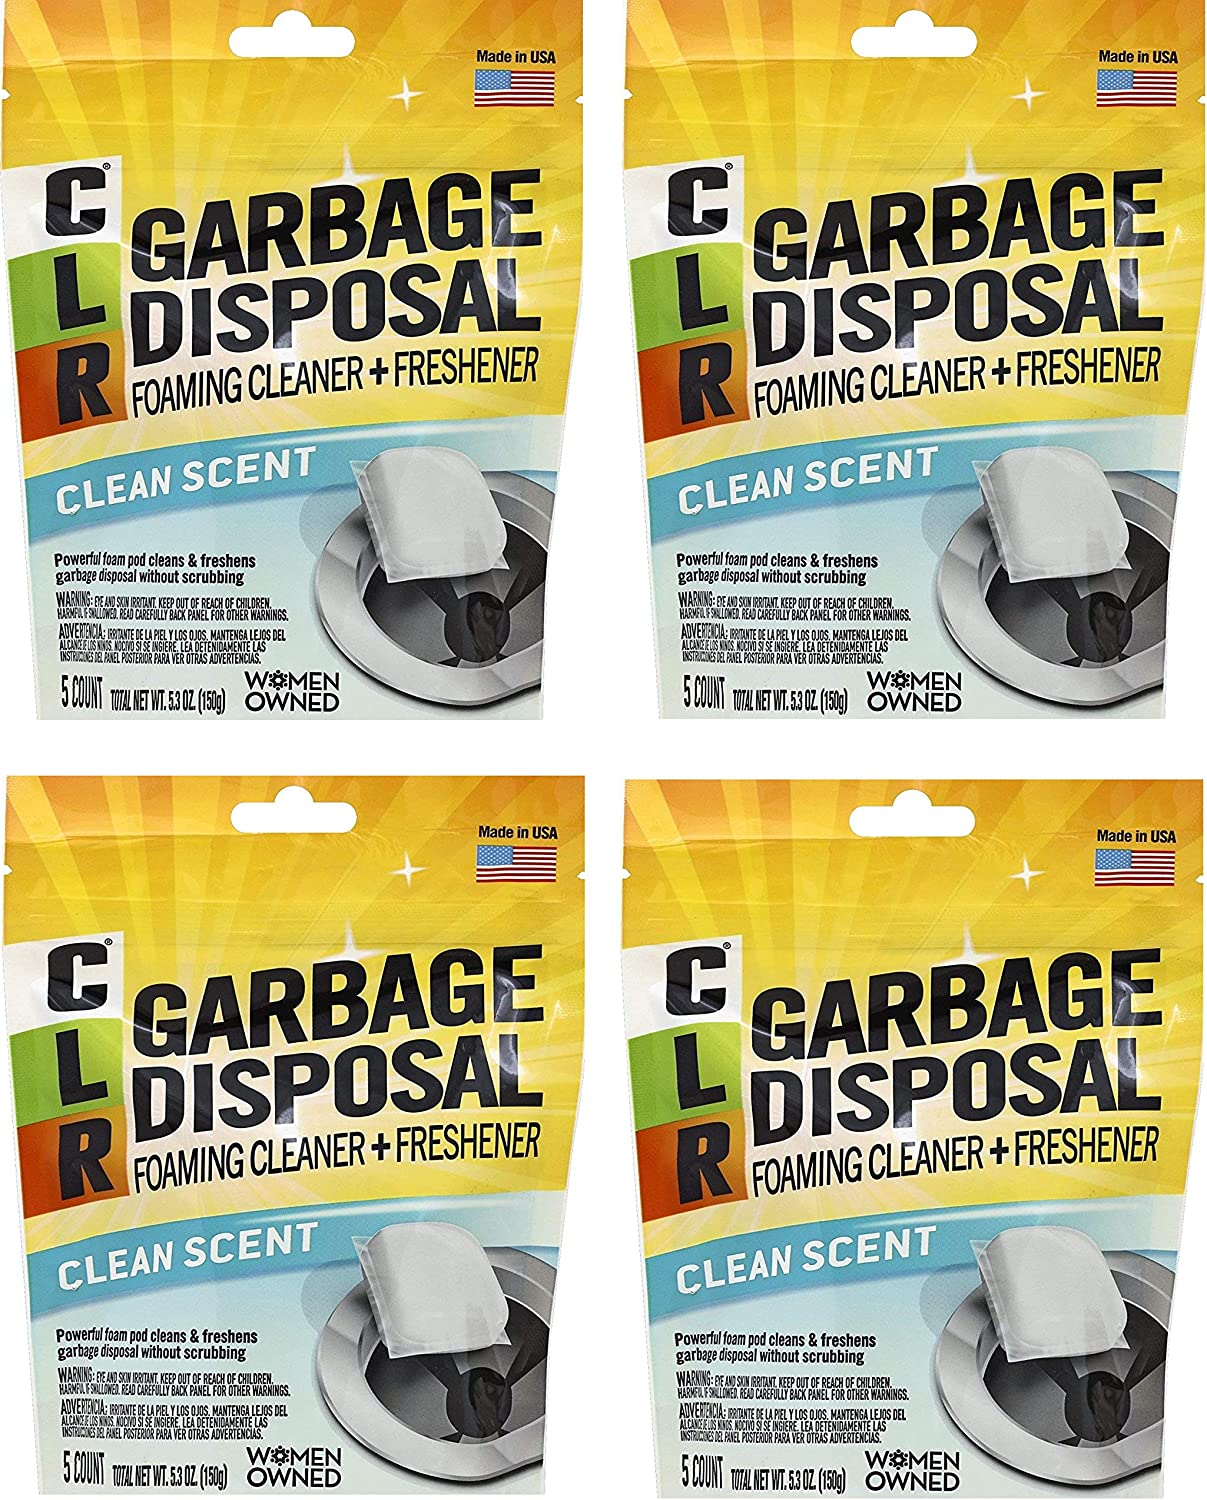 CLR Garbage Disposal Cleaner 5 Max Recommendation 56% OFF Fоur Pods Расk